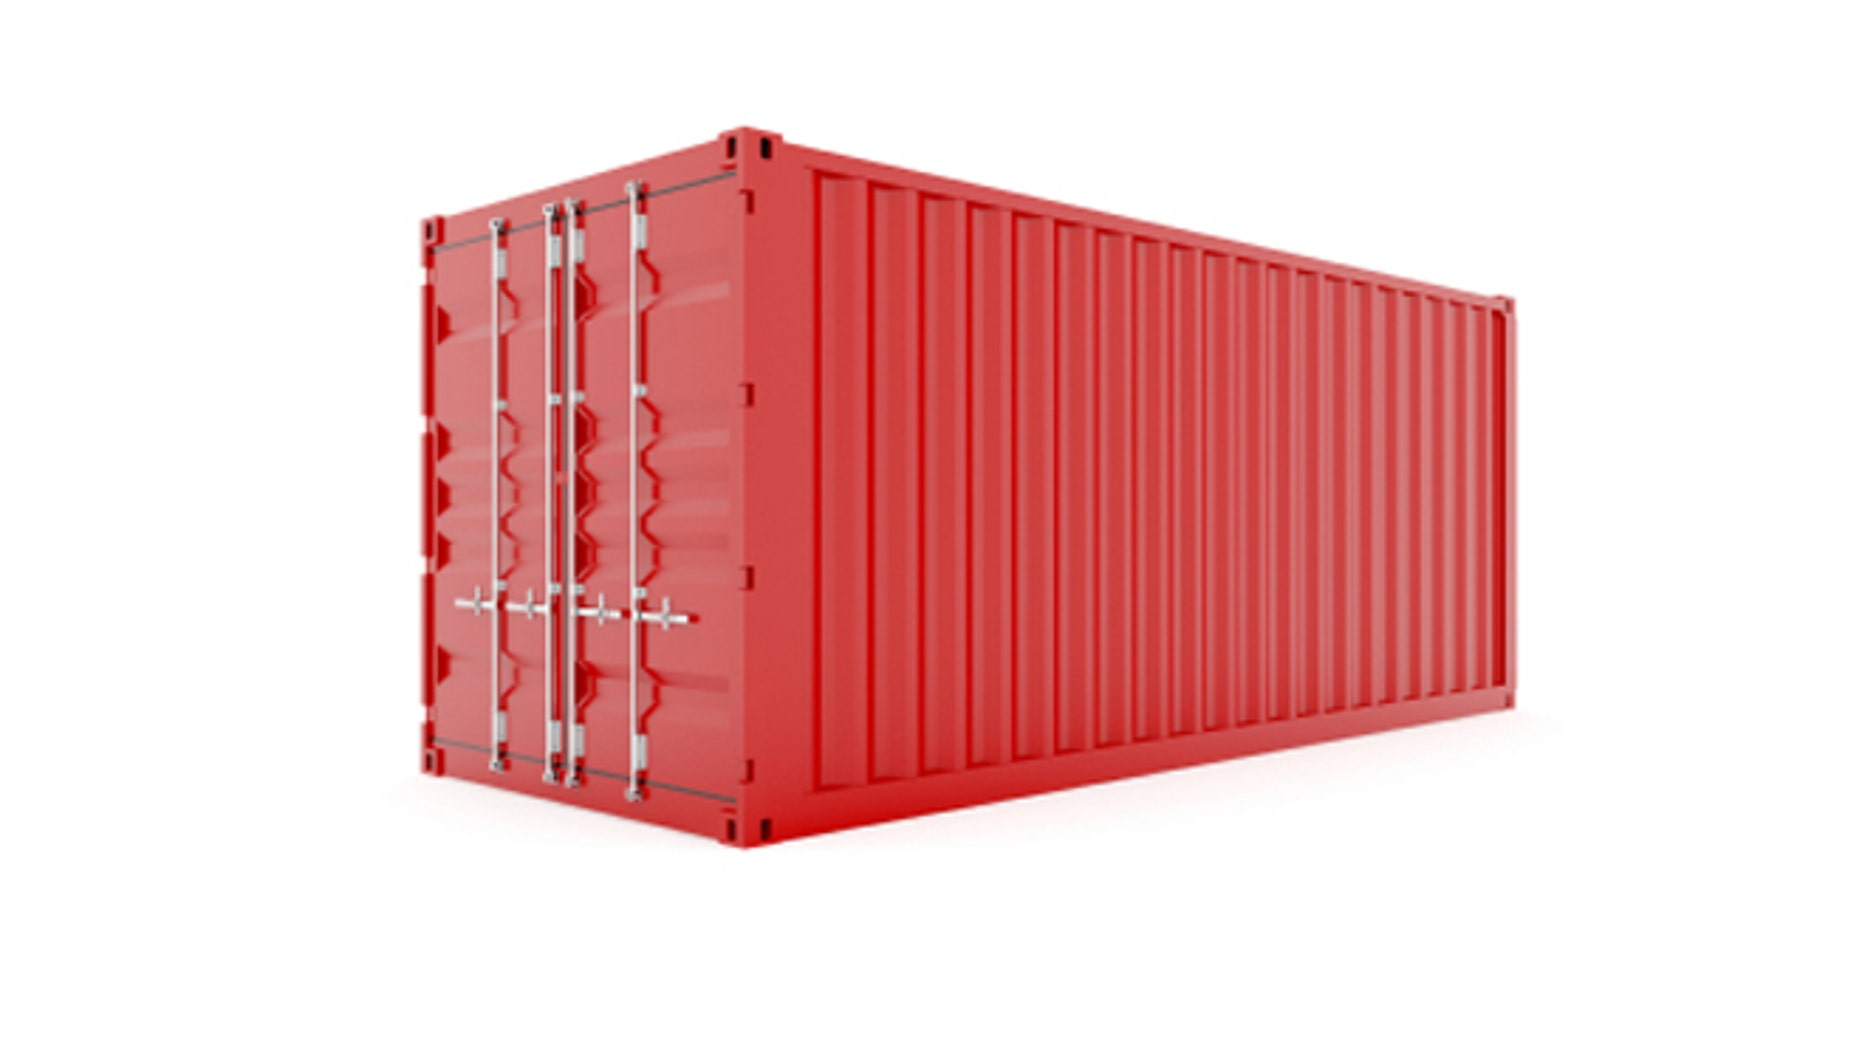 David Boyle and his wife Michele Bertomen built their Brooklyn home out of shipping containers similar to this red cargo container.